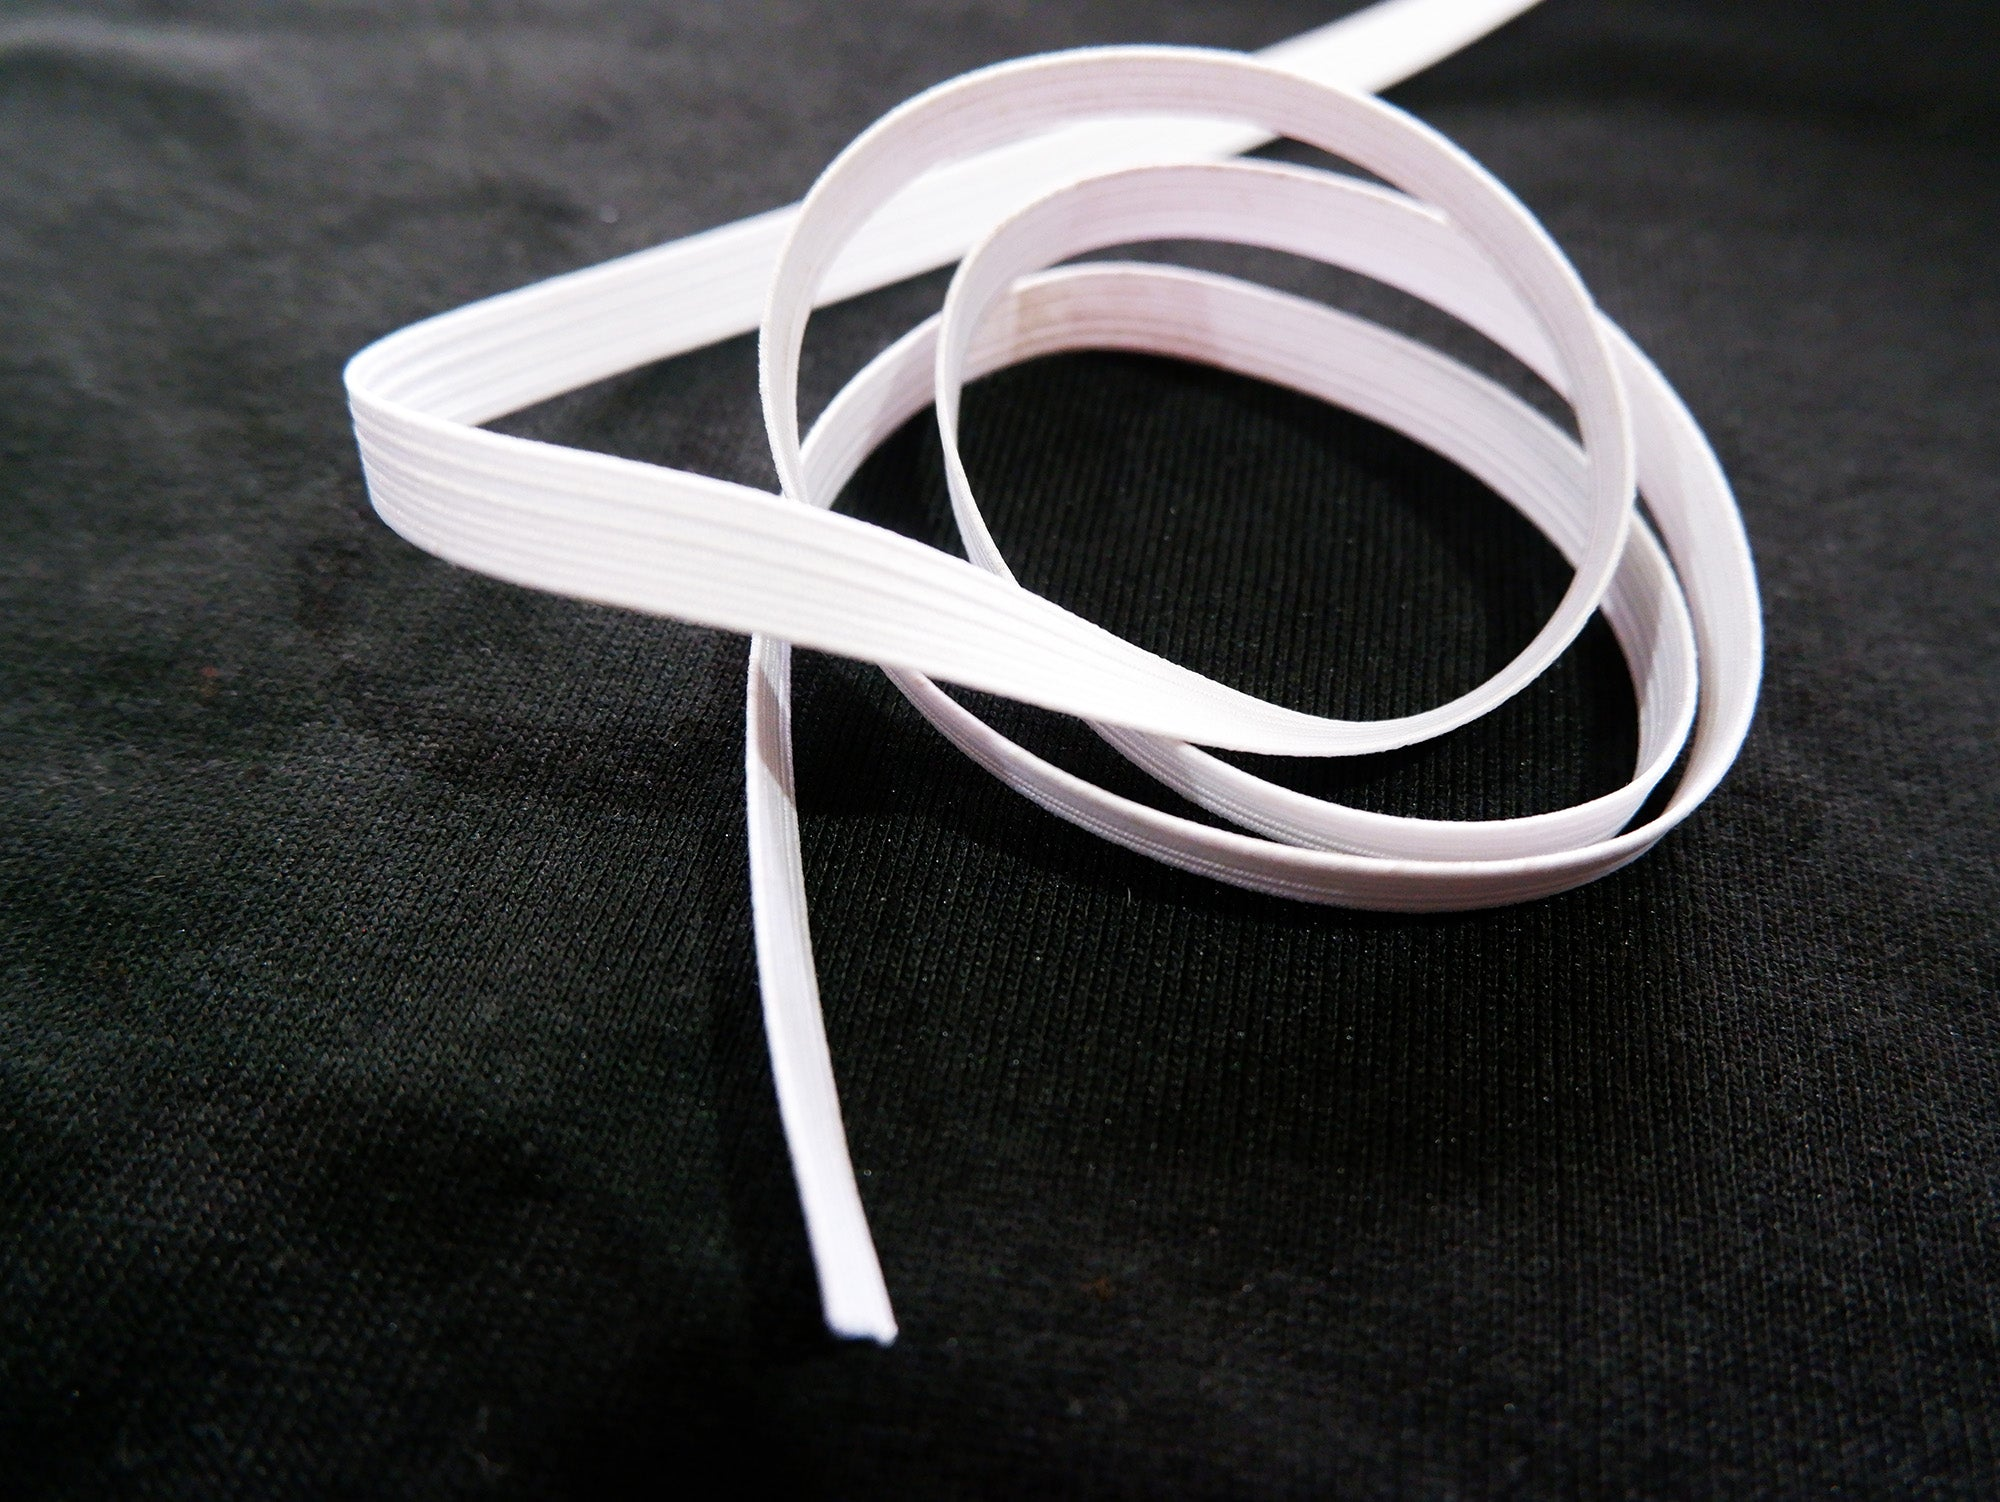 8mm braided elastic, 5 metres, white